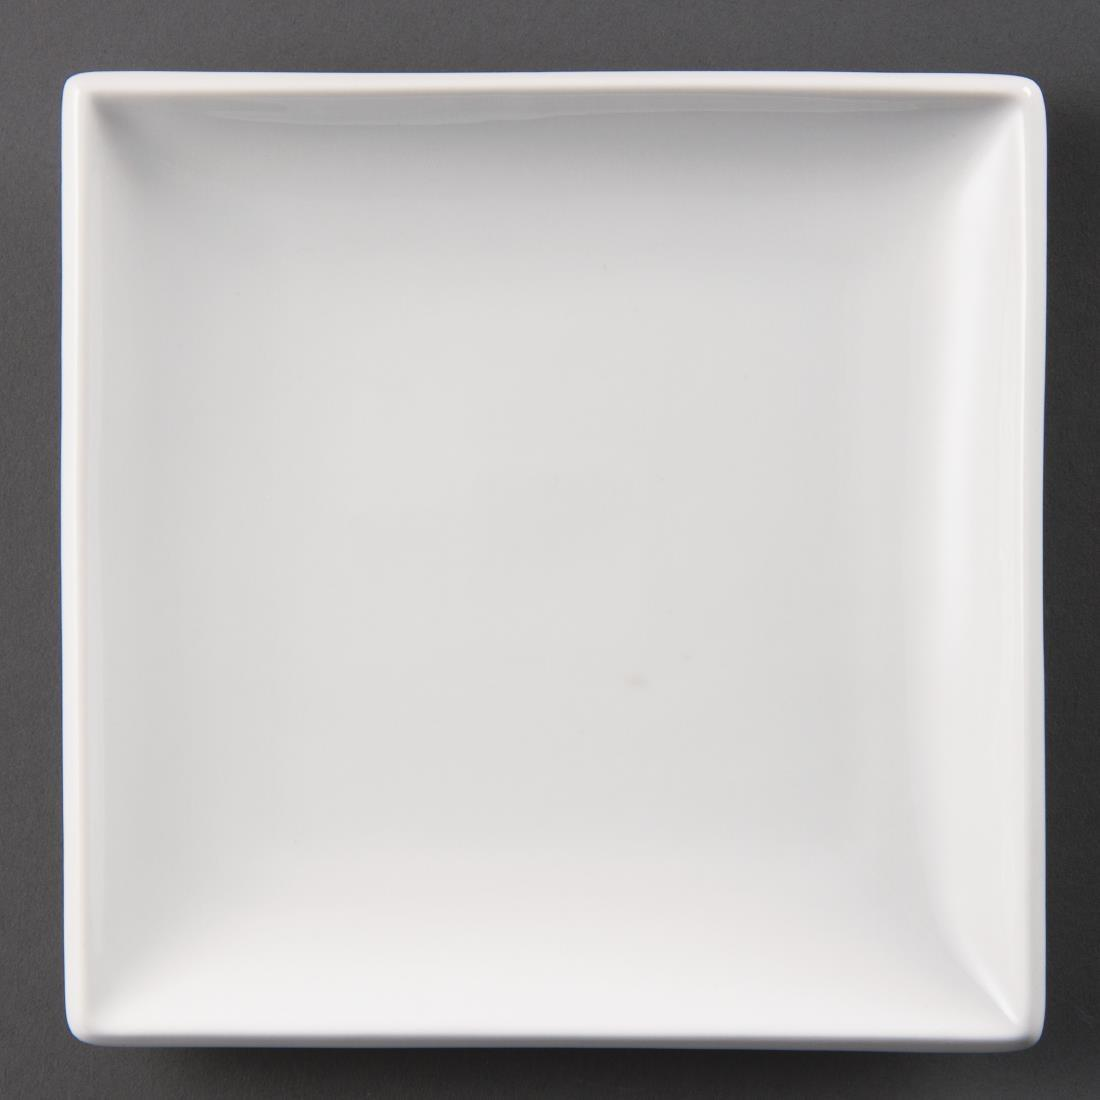 Olympia Whiteware Square Plates 180mm